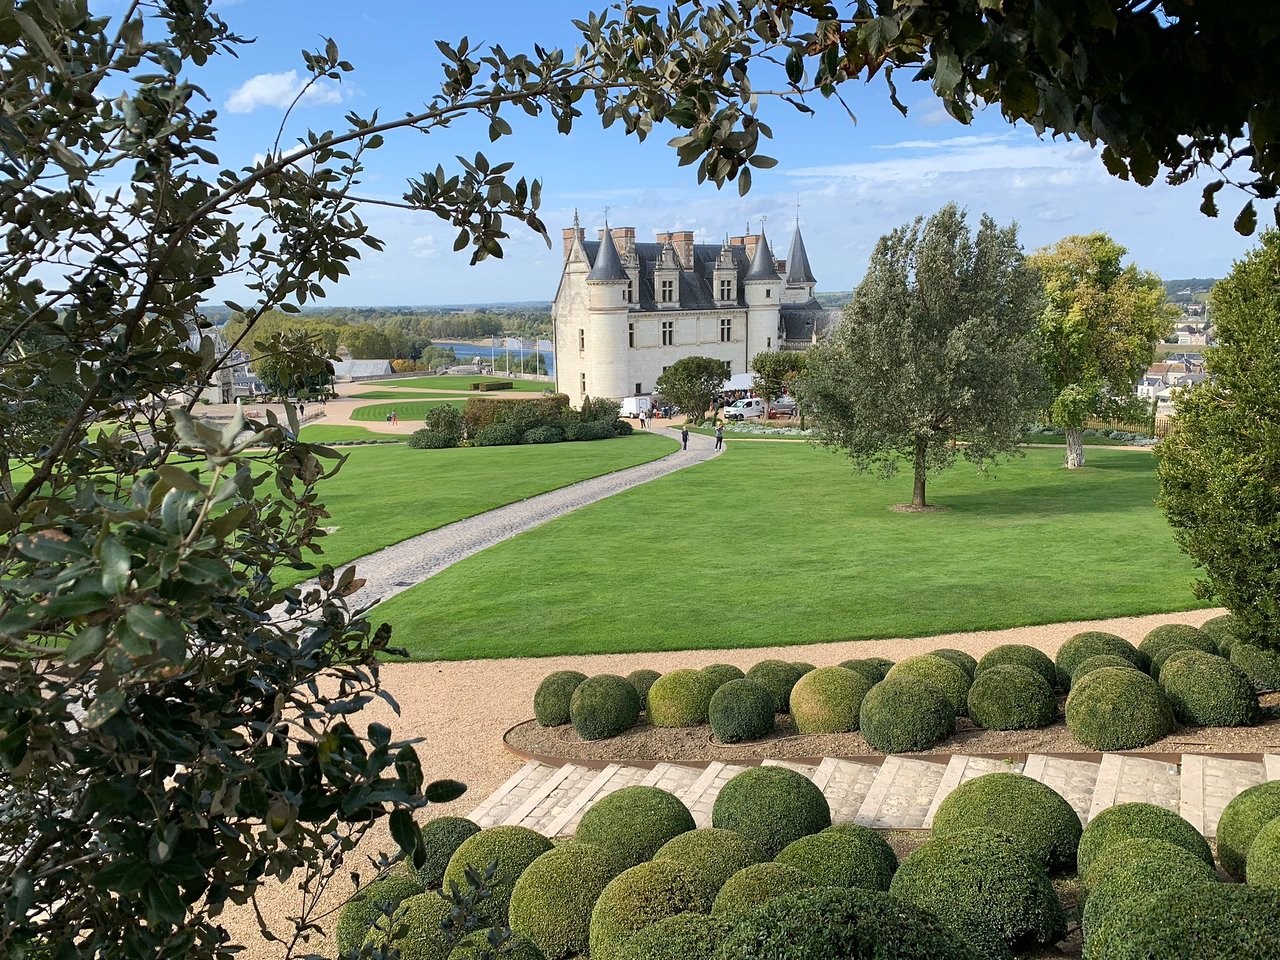 Image from a cycling tour in Amboise, Loire Valley in France. Image taken by one of Discover France's travelers.